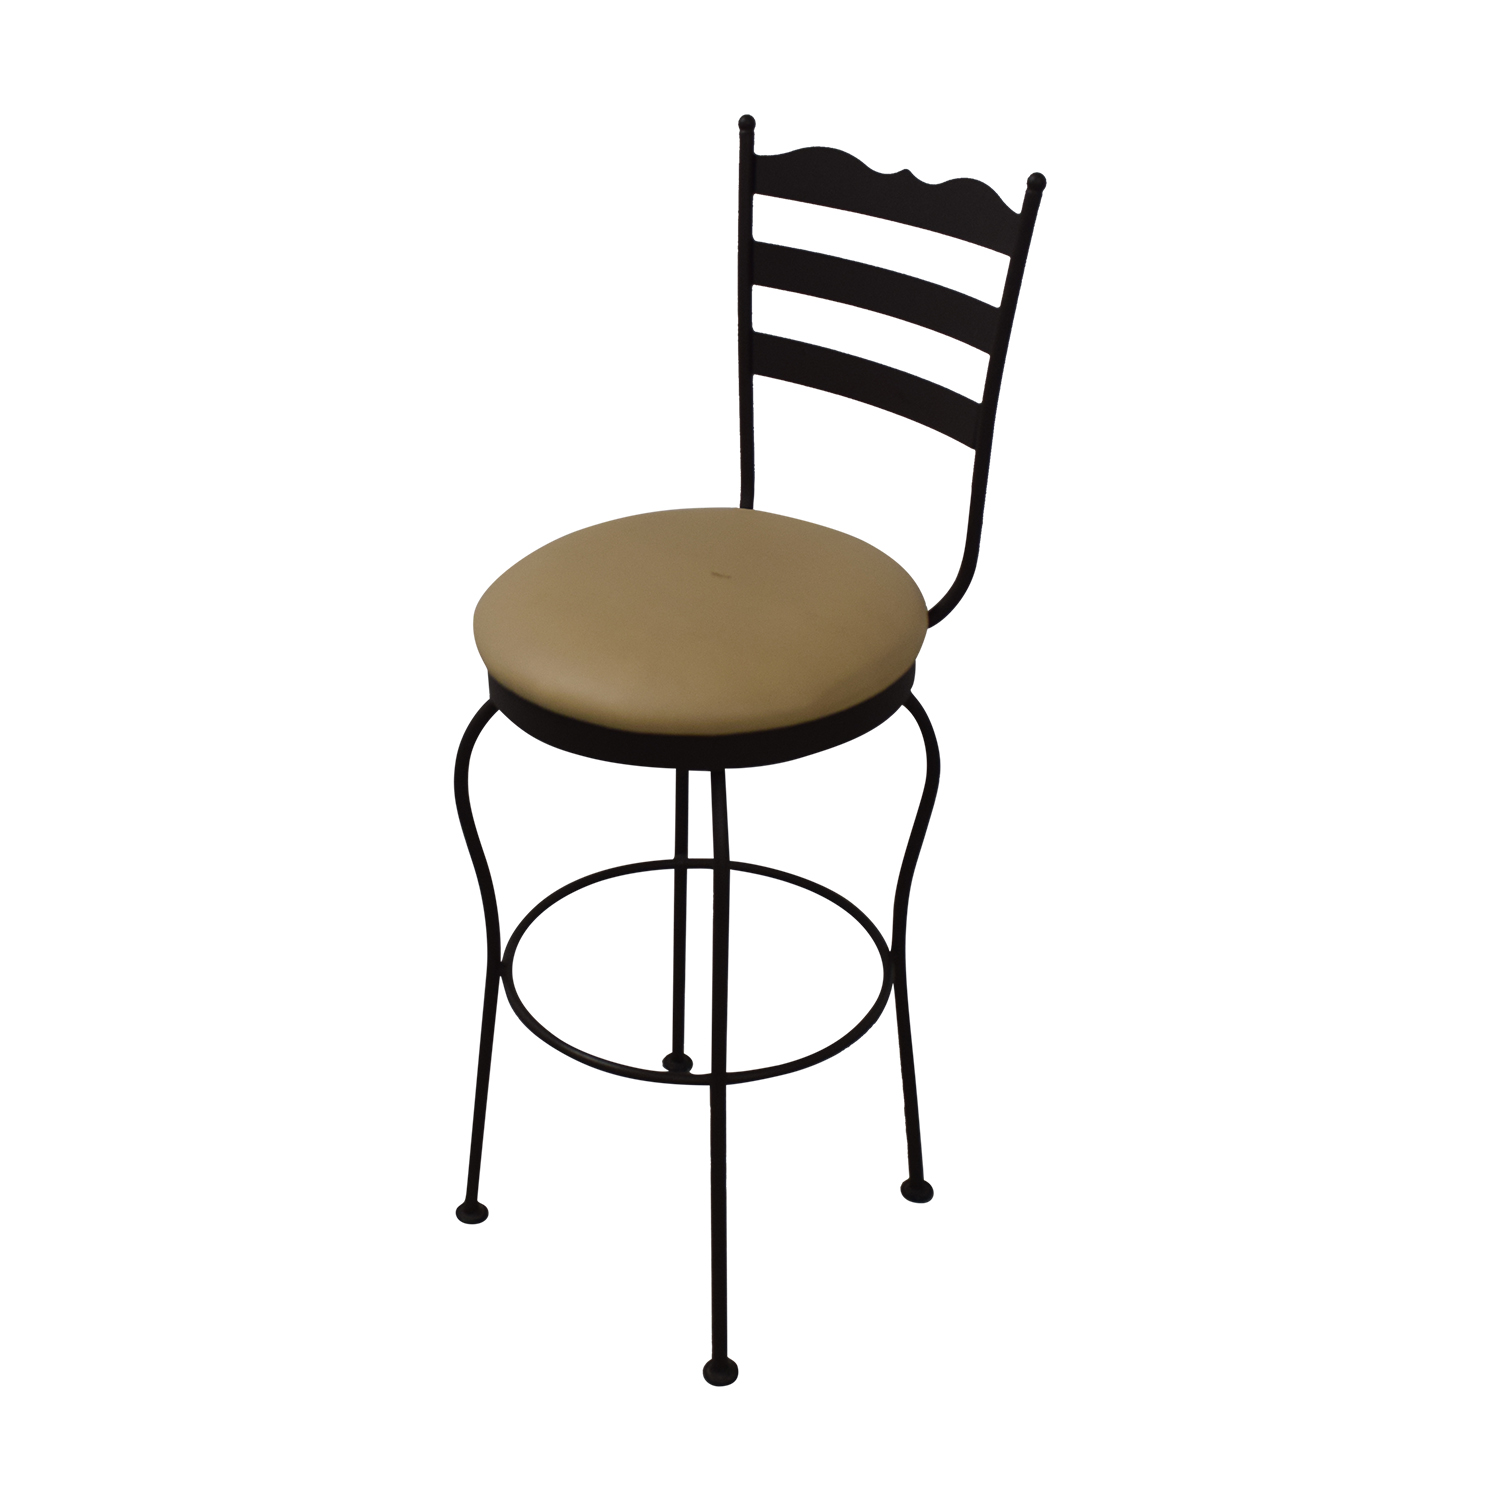 Bar Stools For Sale 84 Off Brown Swivel Bar Stools Chairs